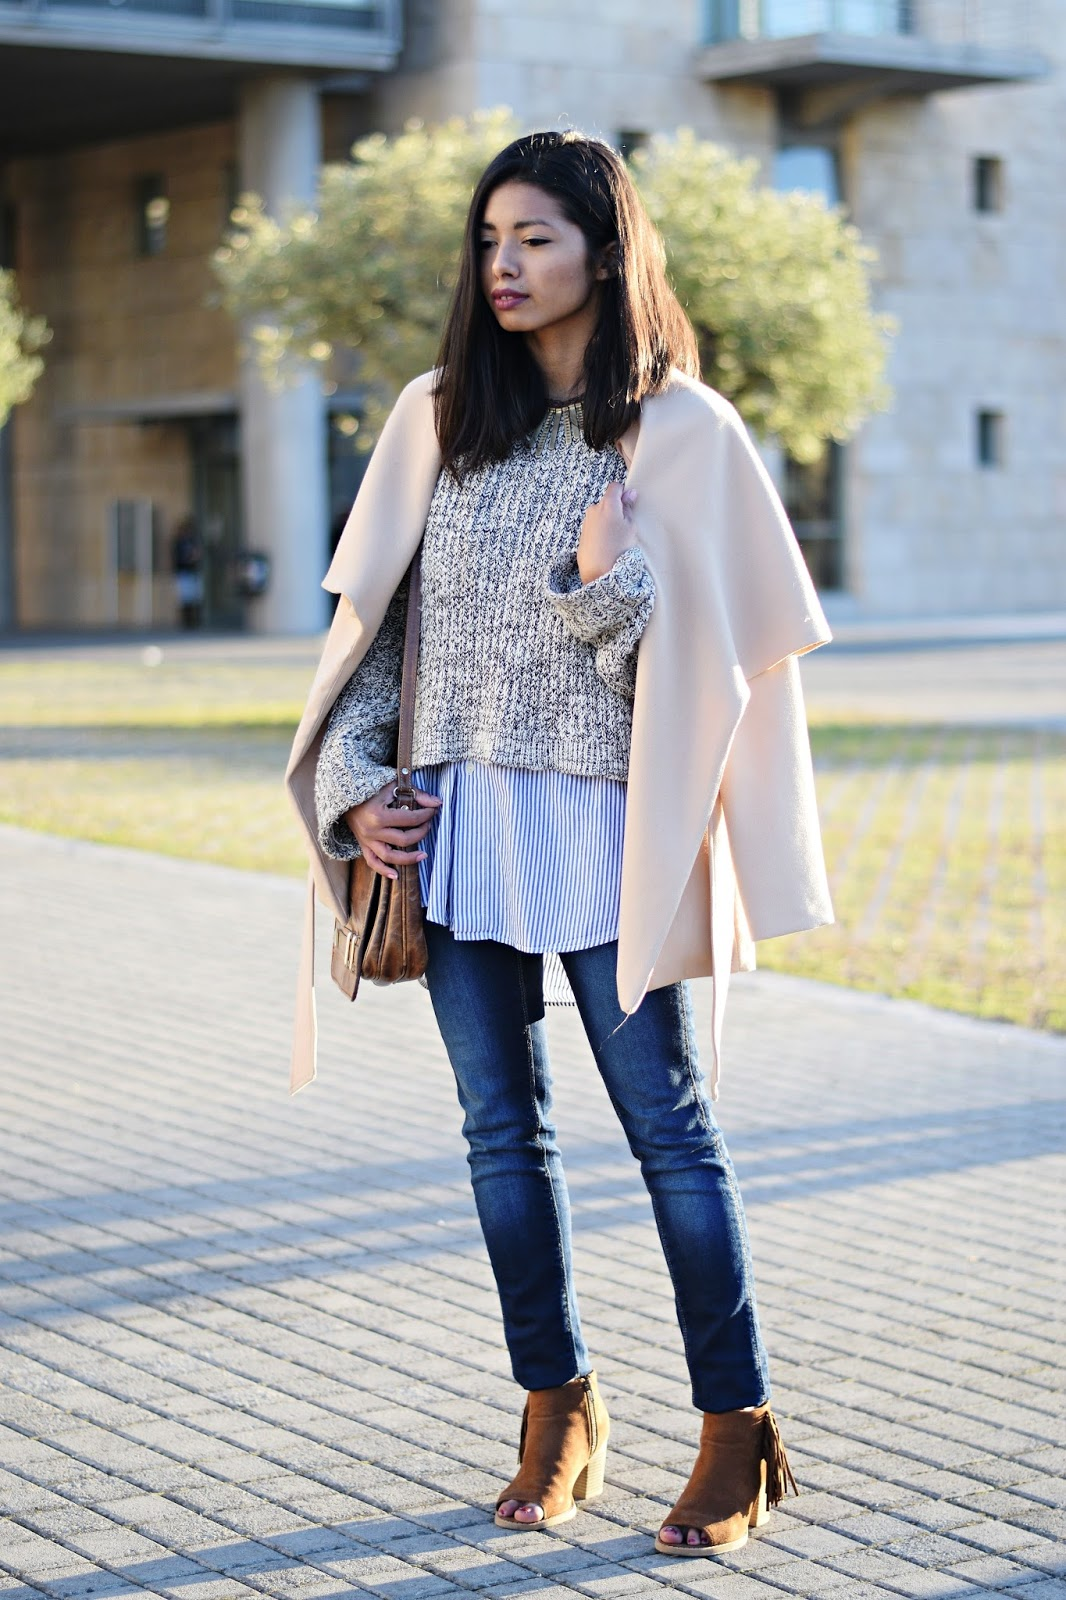 k-meets-style skinny jeans gray sweater